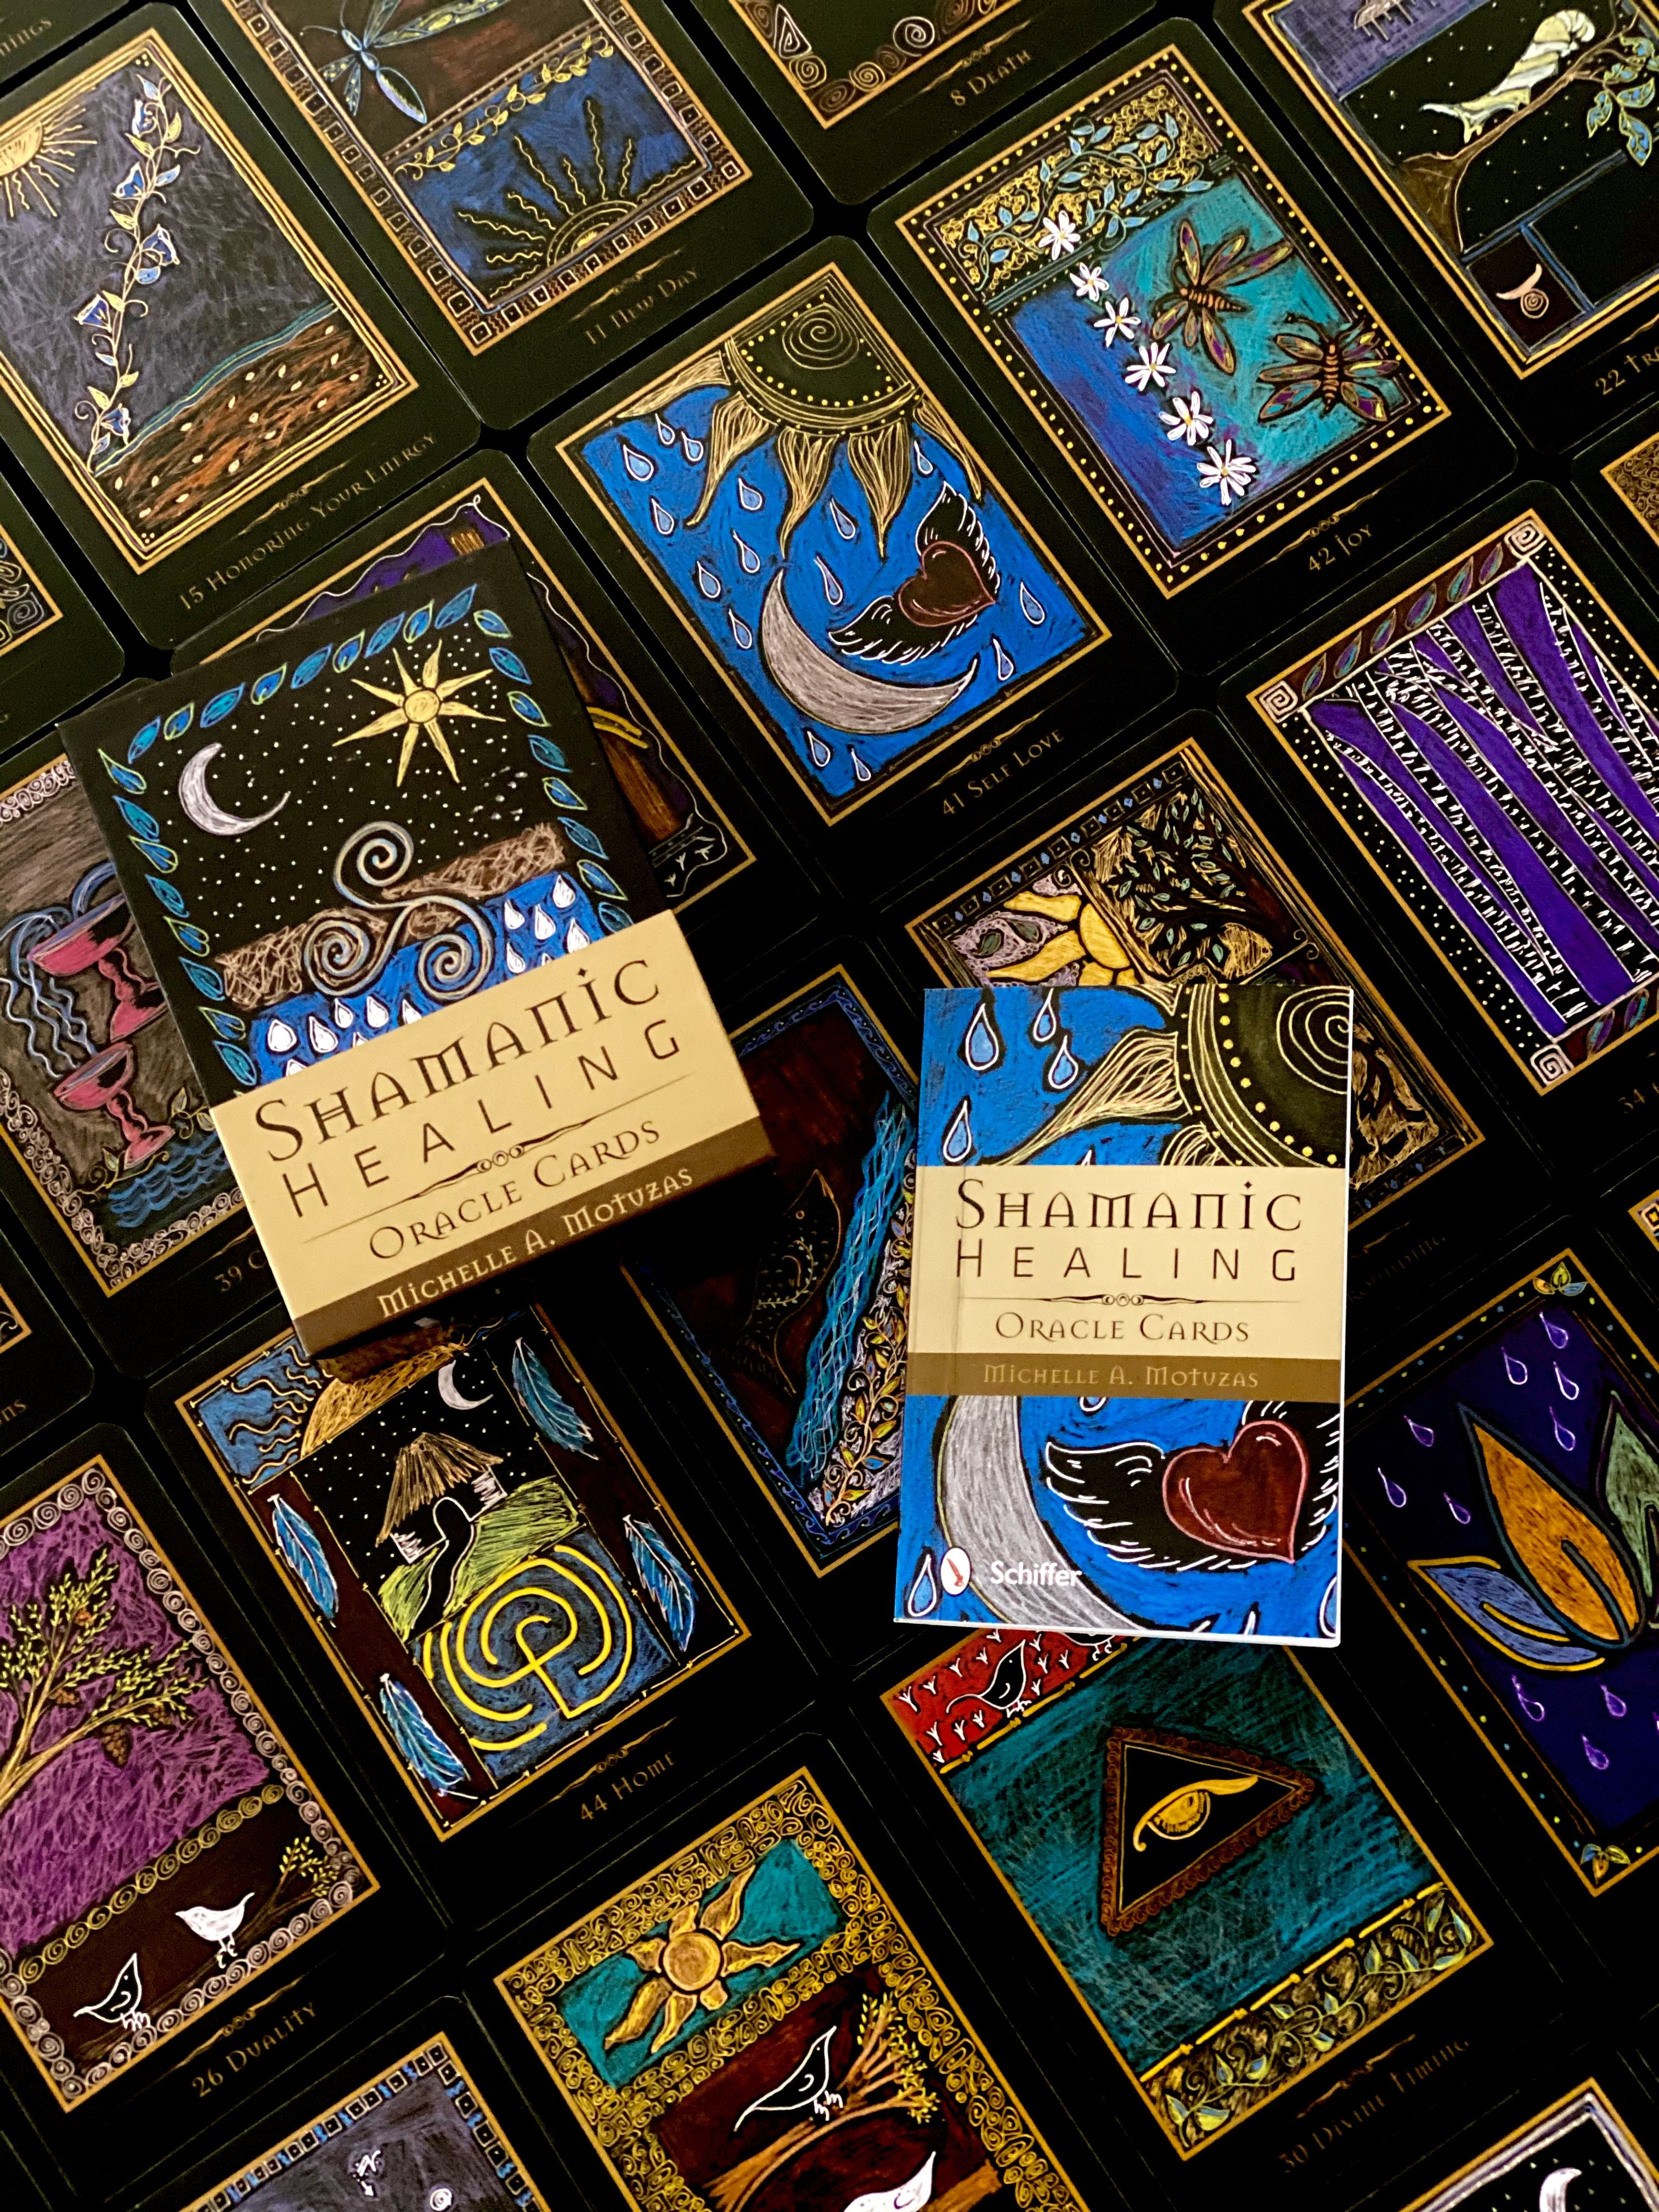 Shamanic Healing Oracle Cards in 2020   Oracle cards, Shamanic healing, Shaman